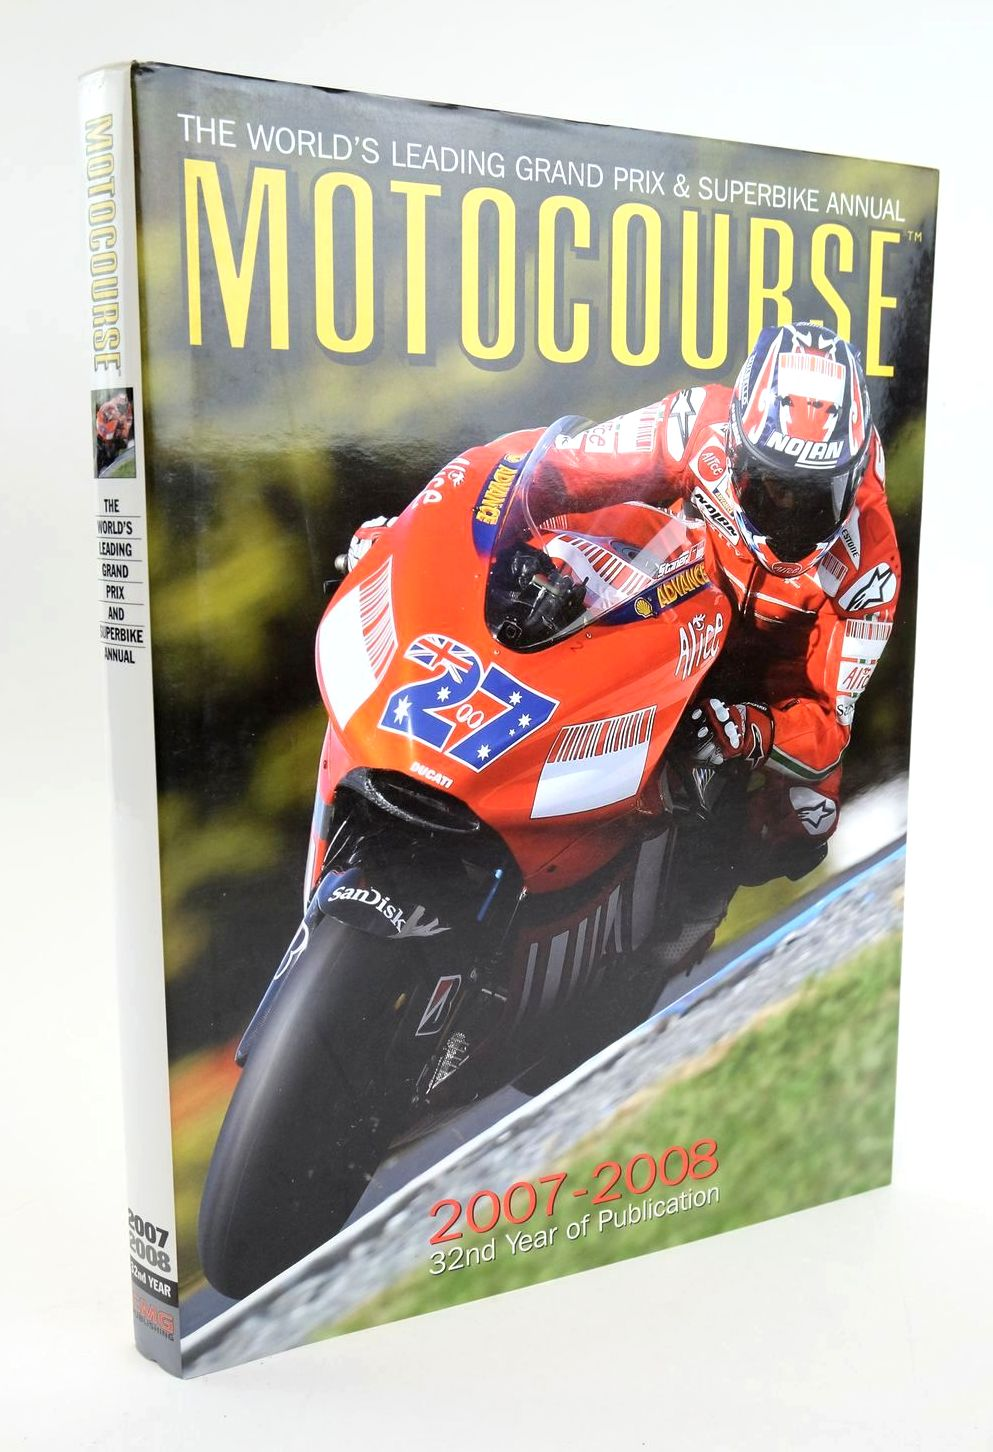 Photo of MOTOCOURSE 2007-2008 published by CMG Publishing (STOCK CODE: 1319235)  for sale by Stella & Rose's Books